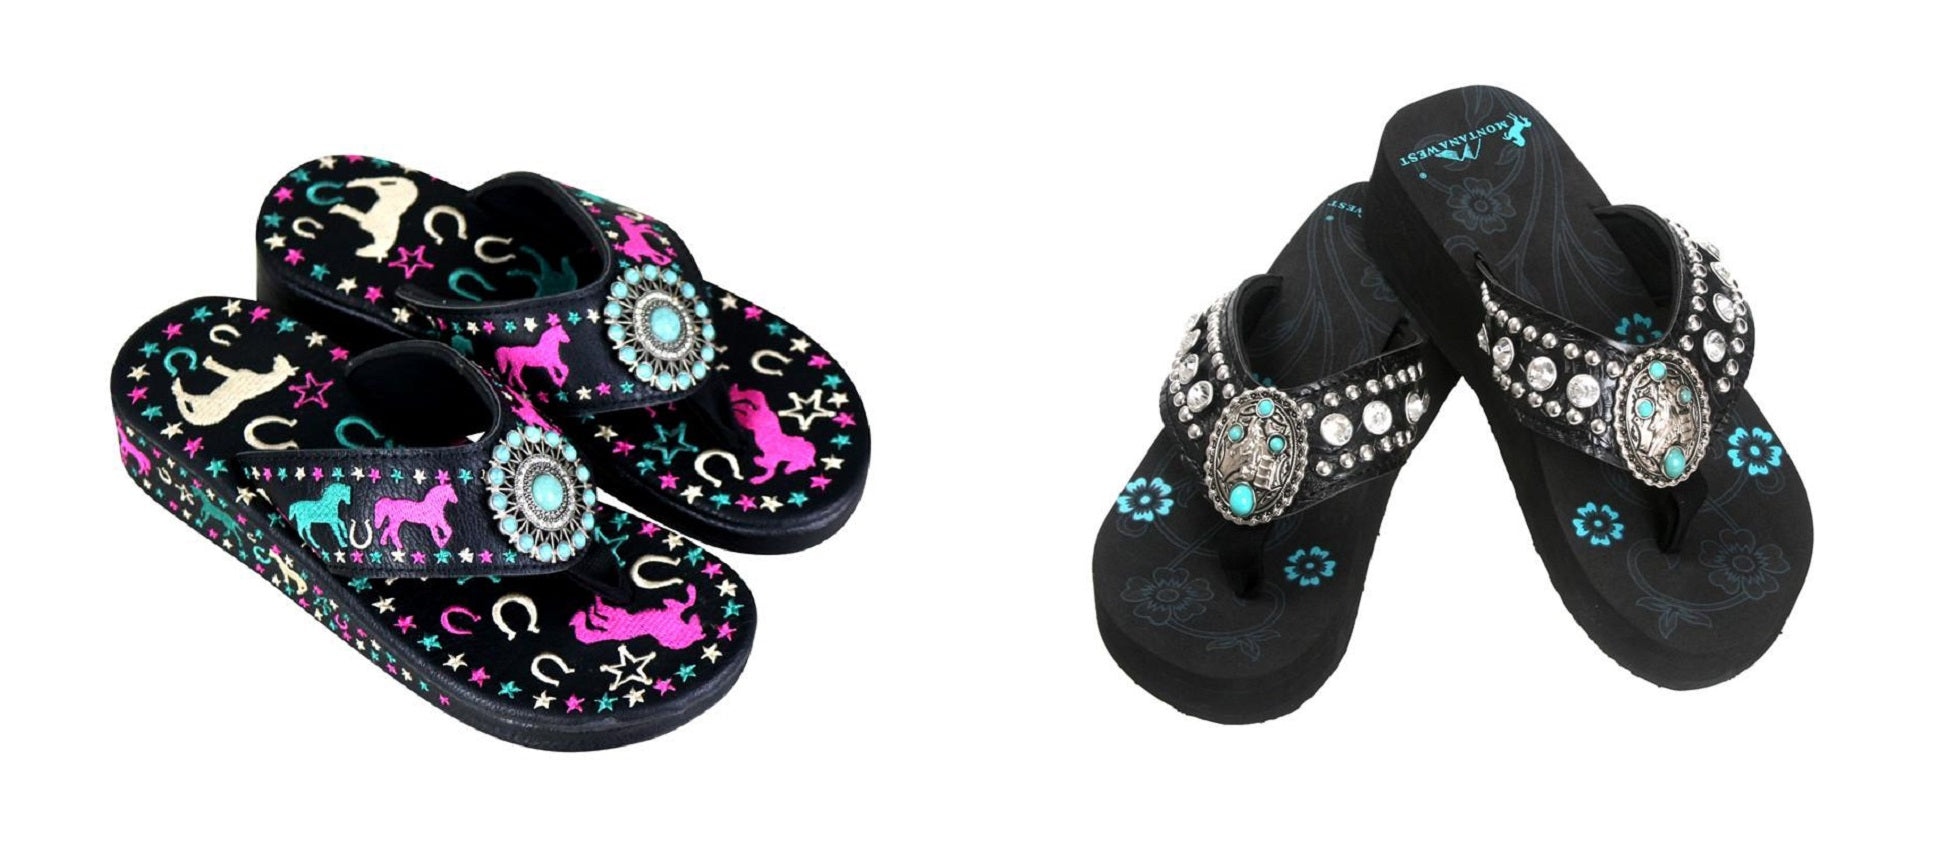 8a251d6625c2 Montana west horse western cowgirl concho flip flops sandals shoes black  turquoise jpg 1954x850 Turquoise western